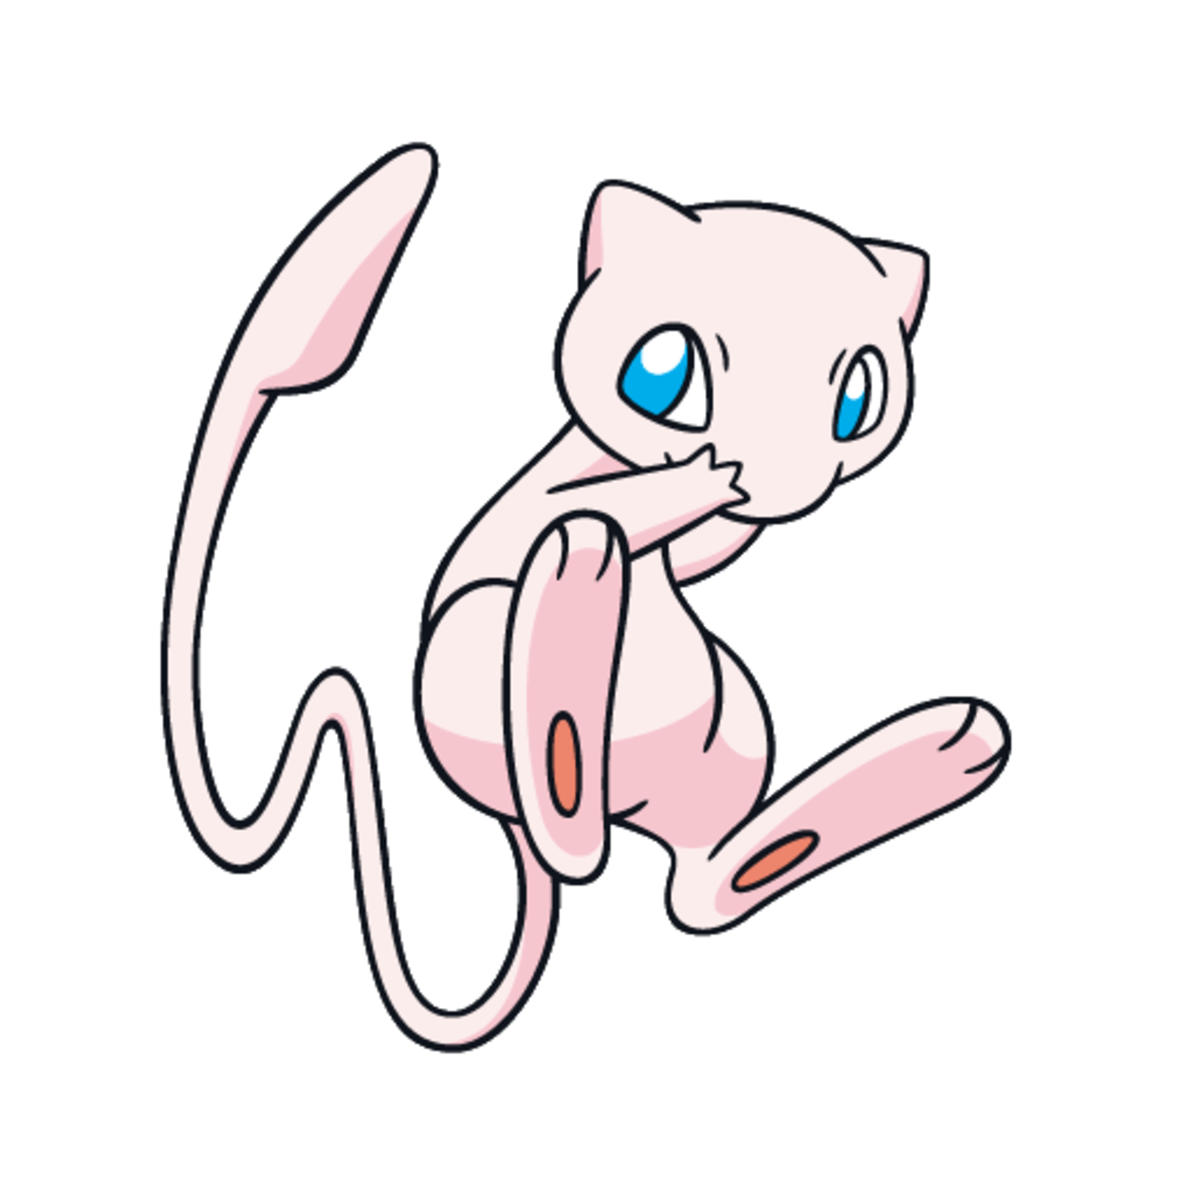 How to Catch Mew in